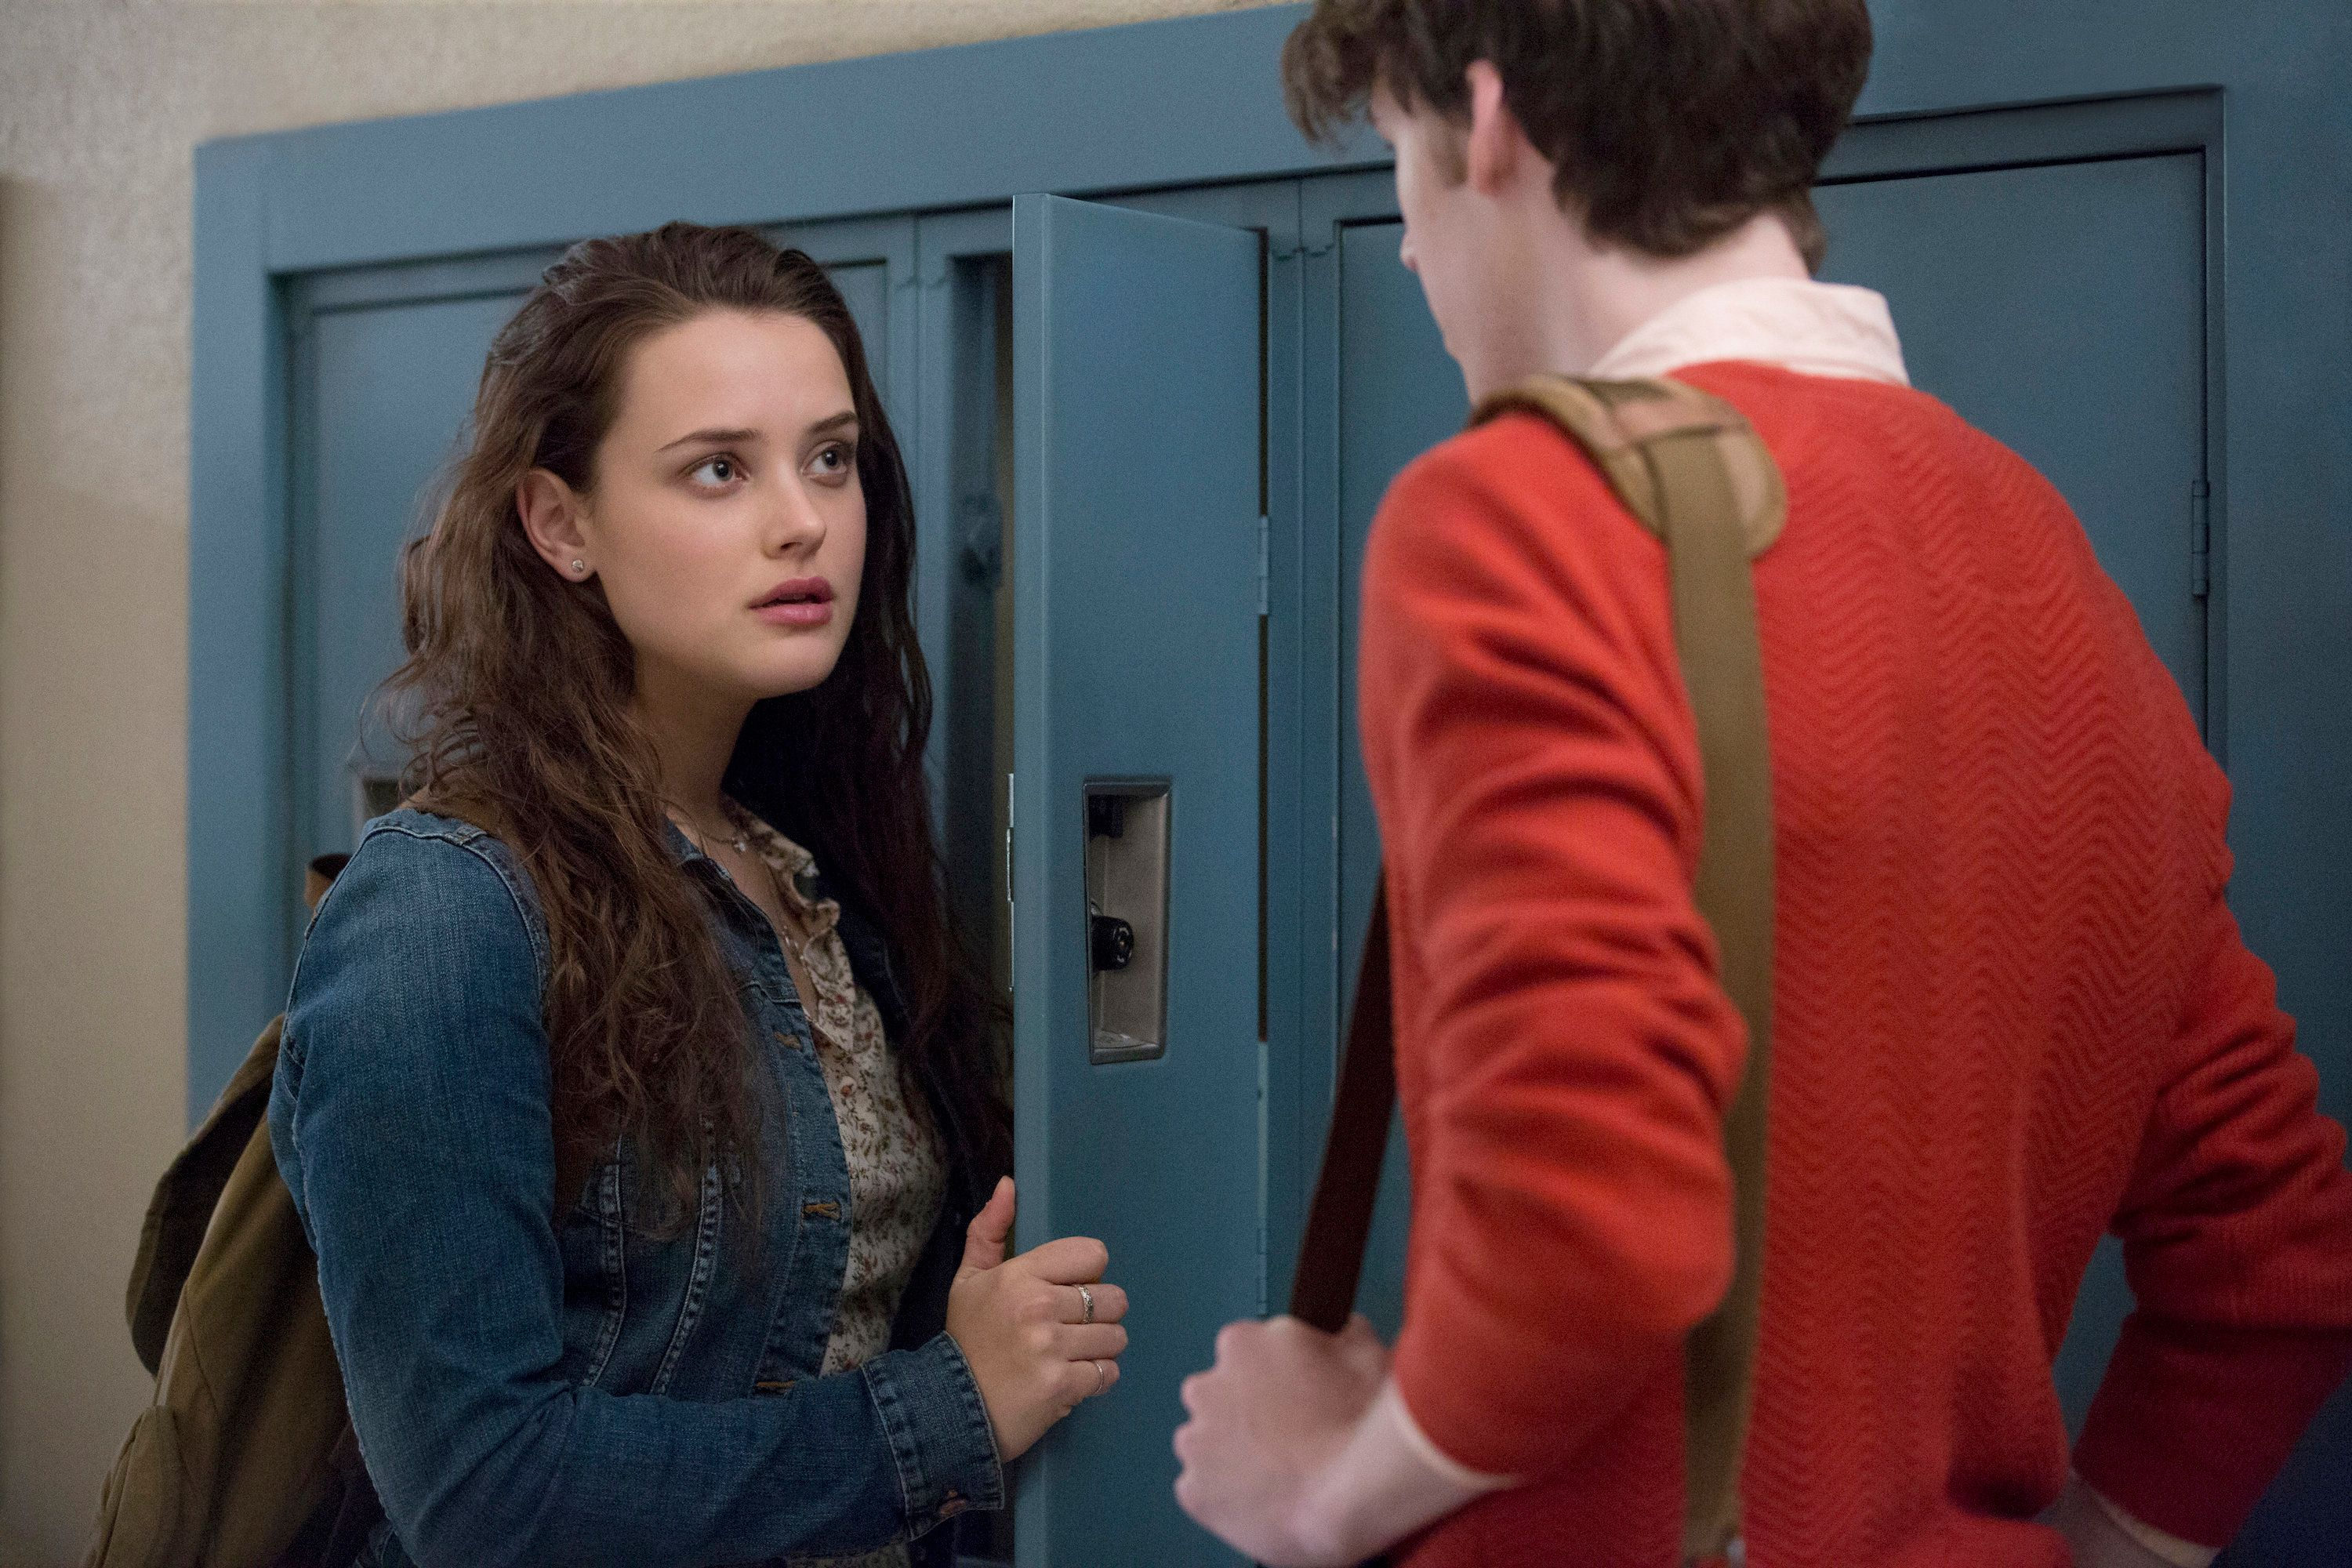 '13 Reasons Why' Started A Conversation. Who's Responsible For Finishing It?